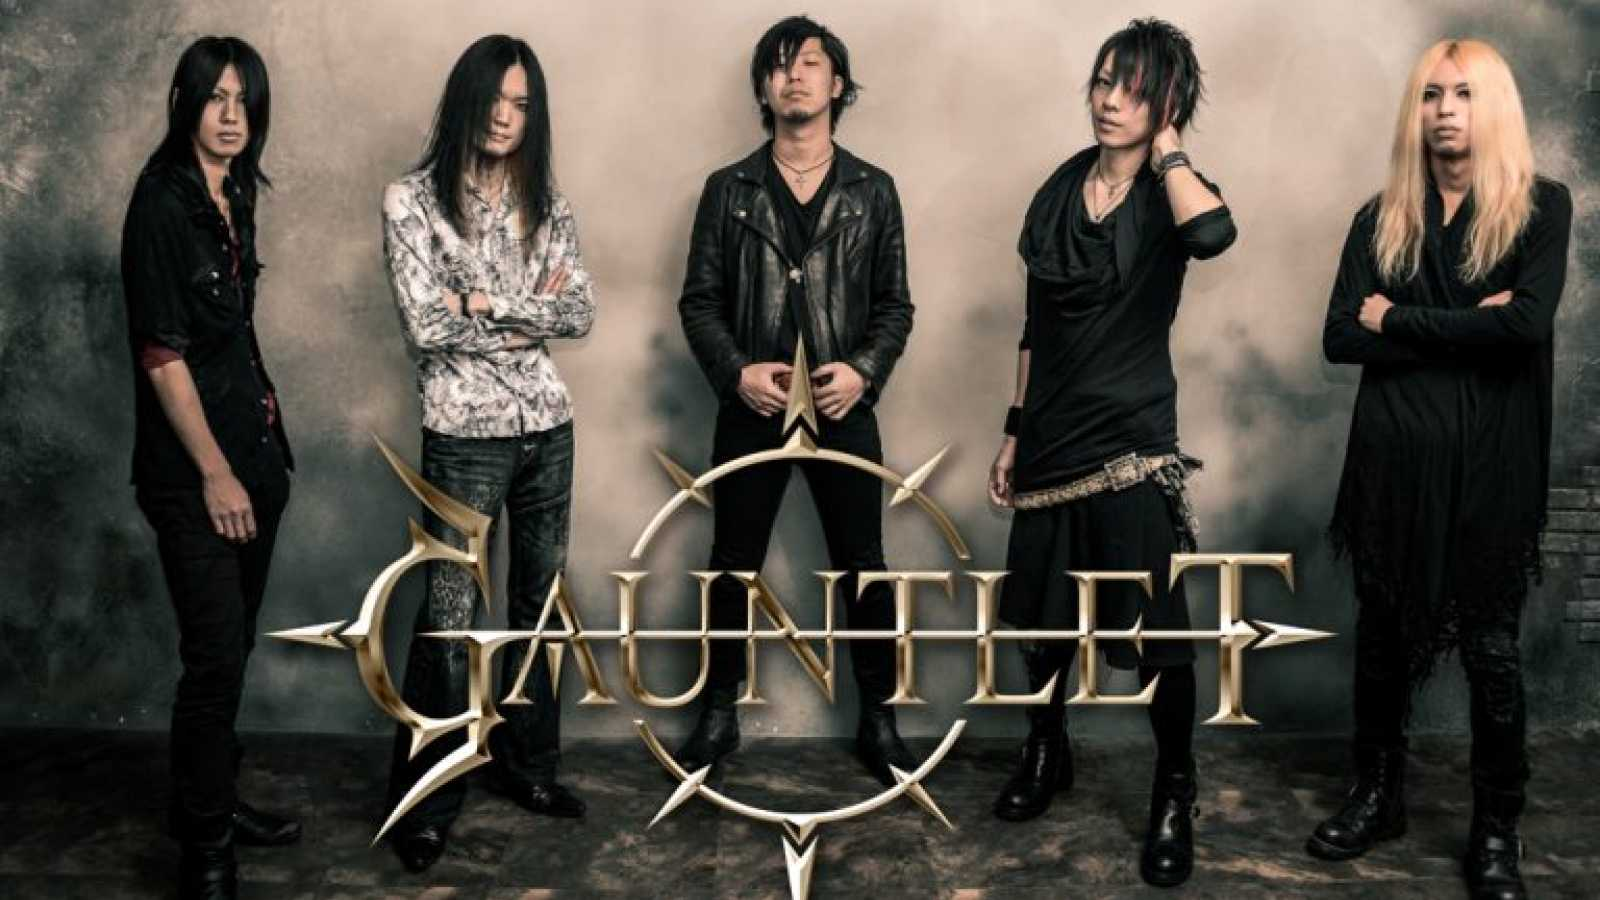 Departure For The Frontier é o novo mini-álbum de GAUNTLET  © GAUNTLET All rights reserved.